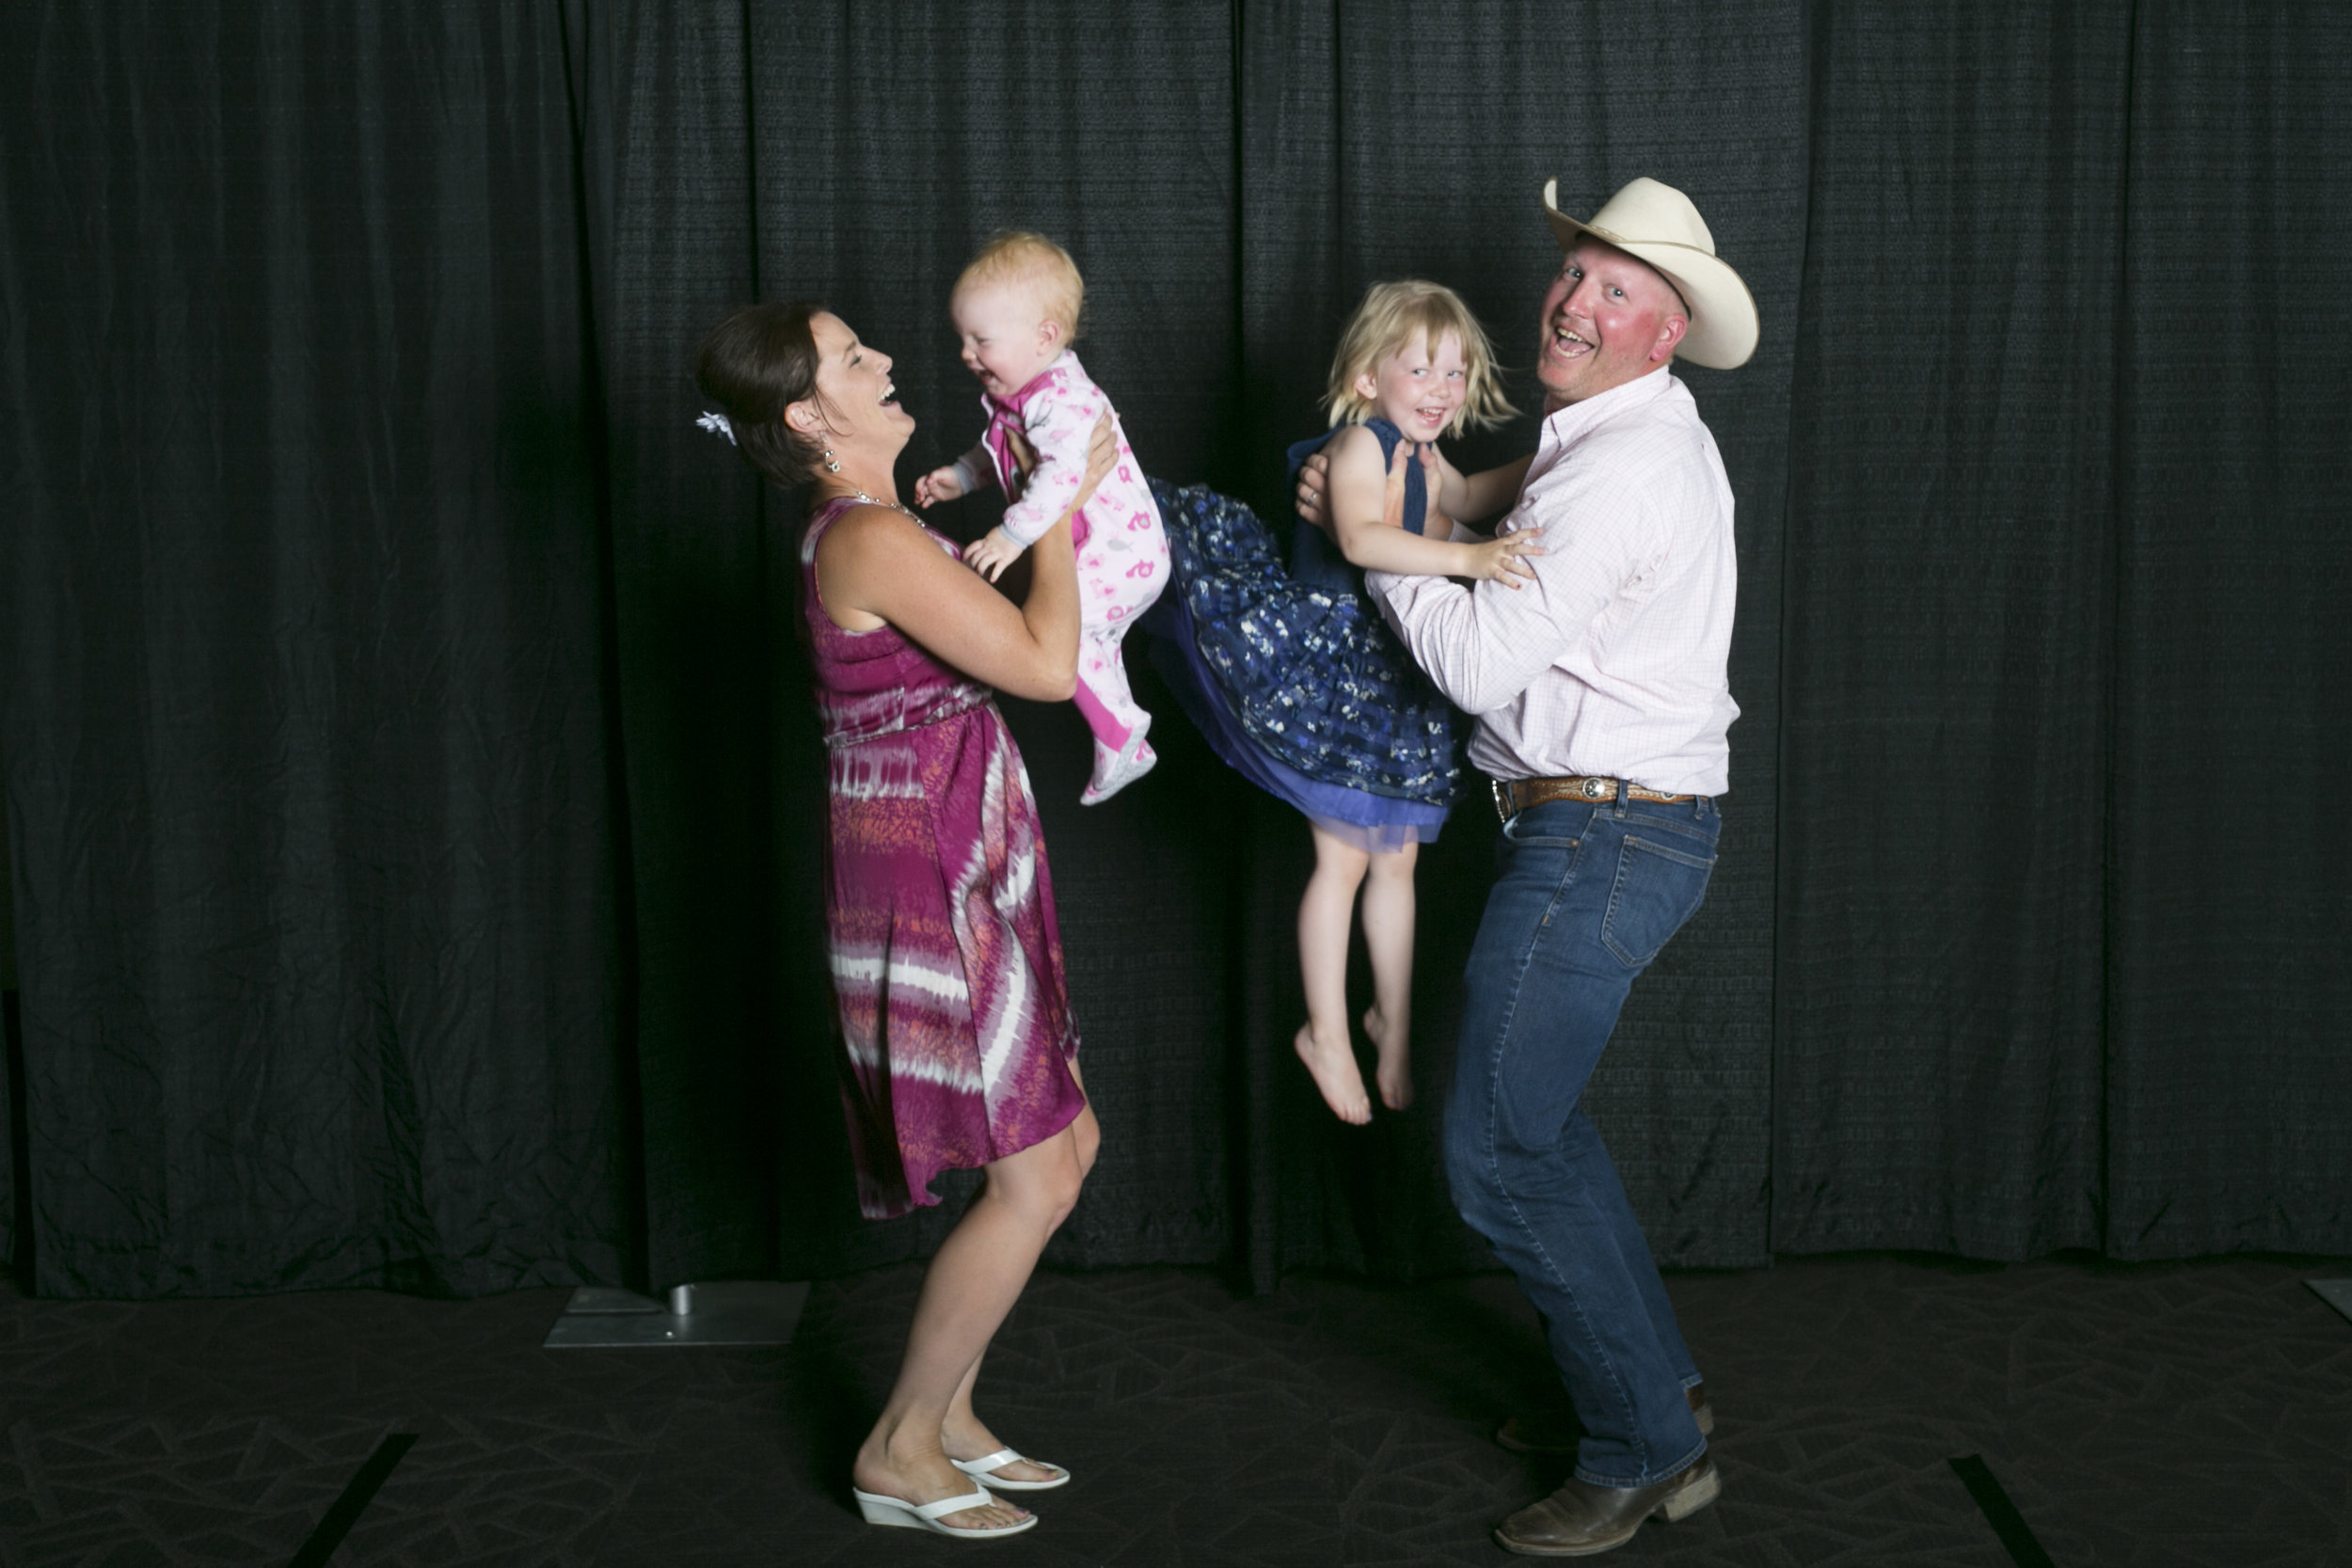 wedding photo booth-10.jpg